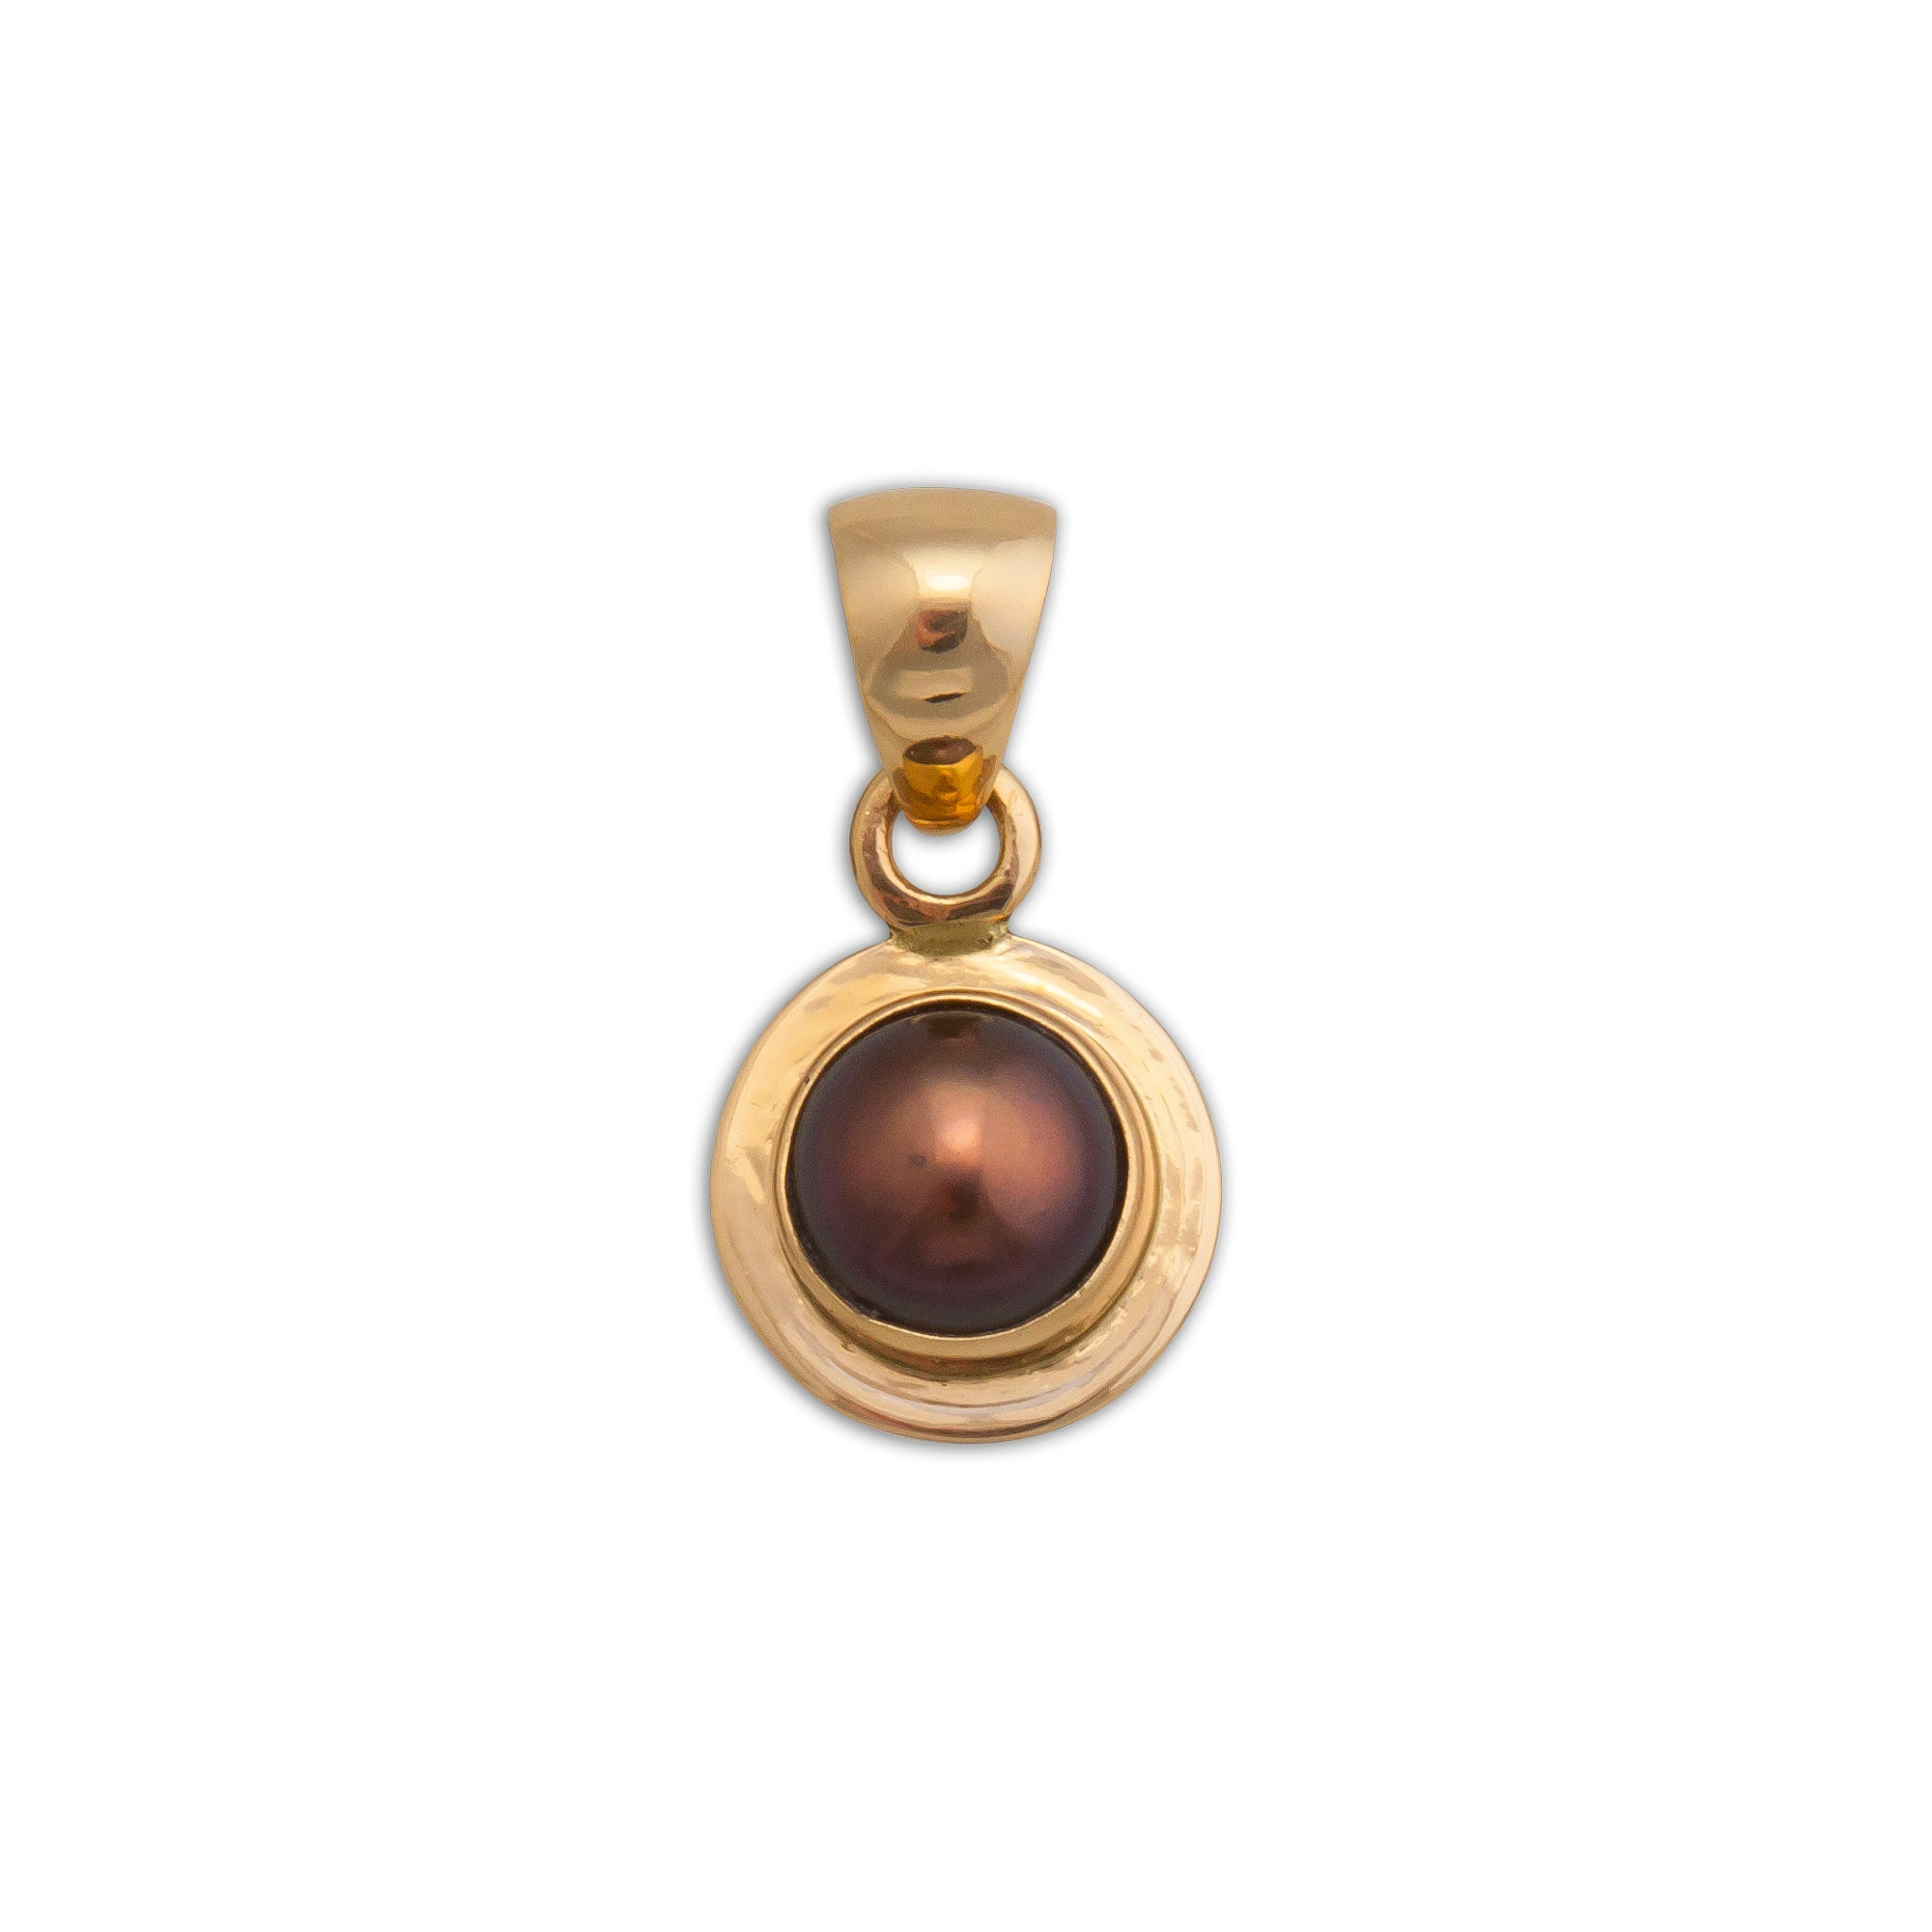 Alchemia-Bronze-Pearl-Pendant-with-Detailed-Edge-1-Charles Albert Inc